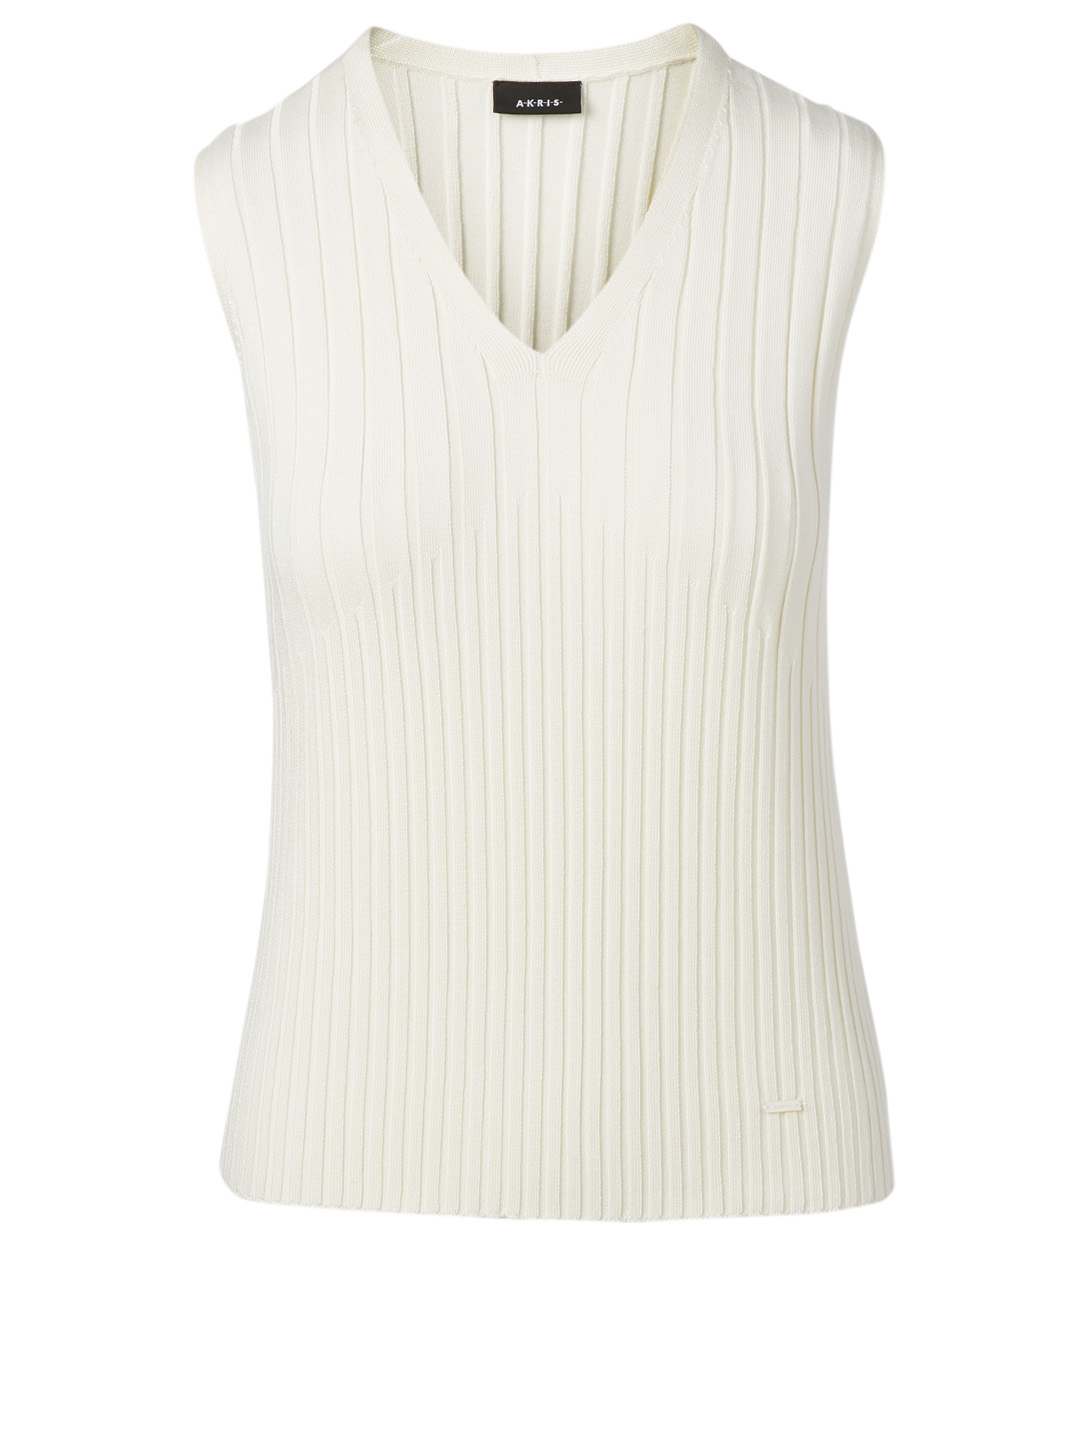 AKRIS Silk Stretch V-Neck Top Women's White